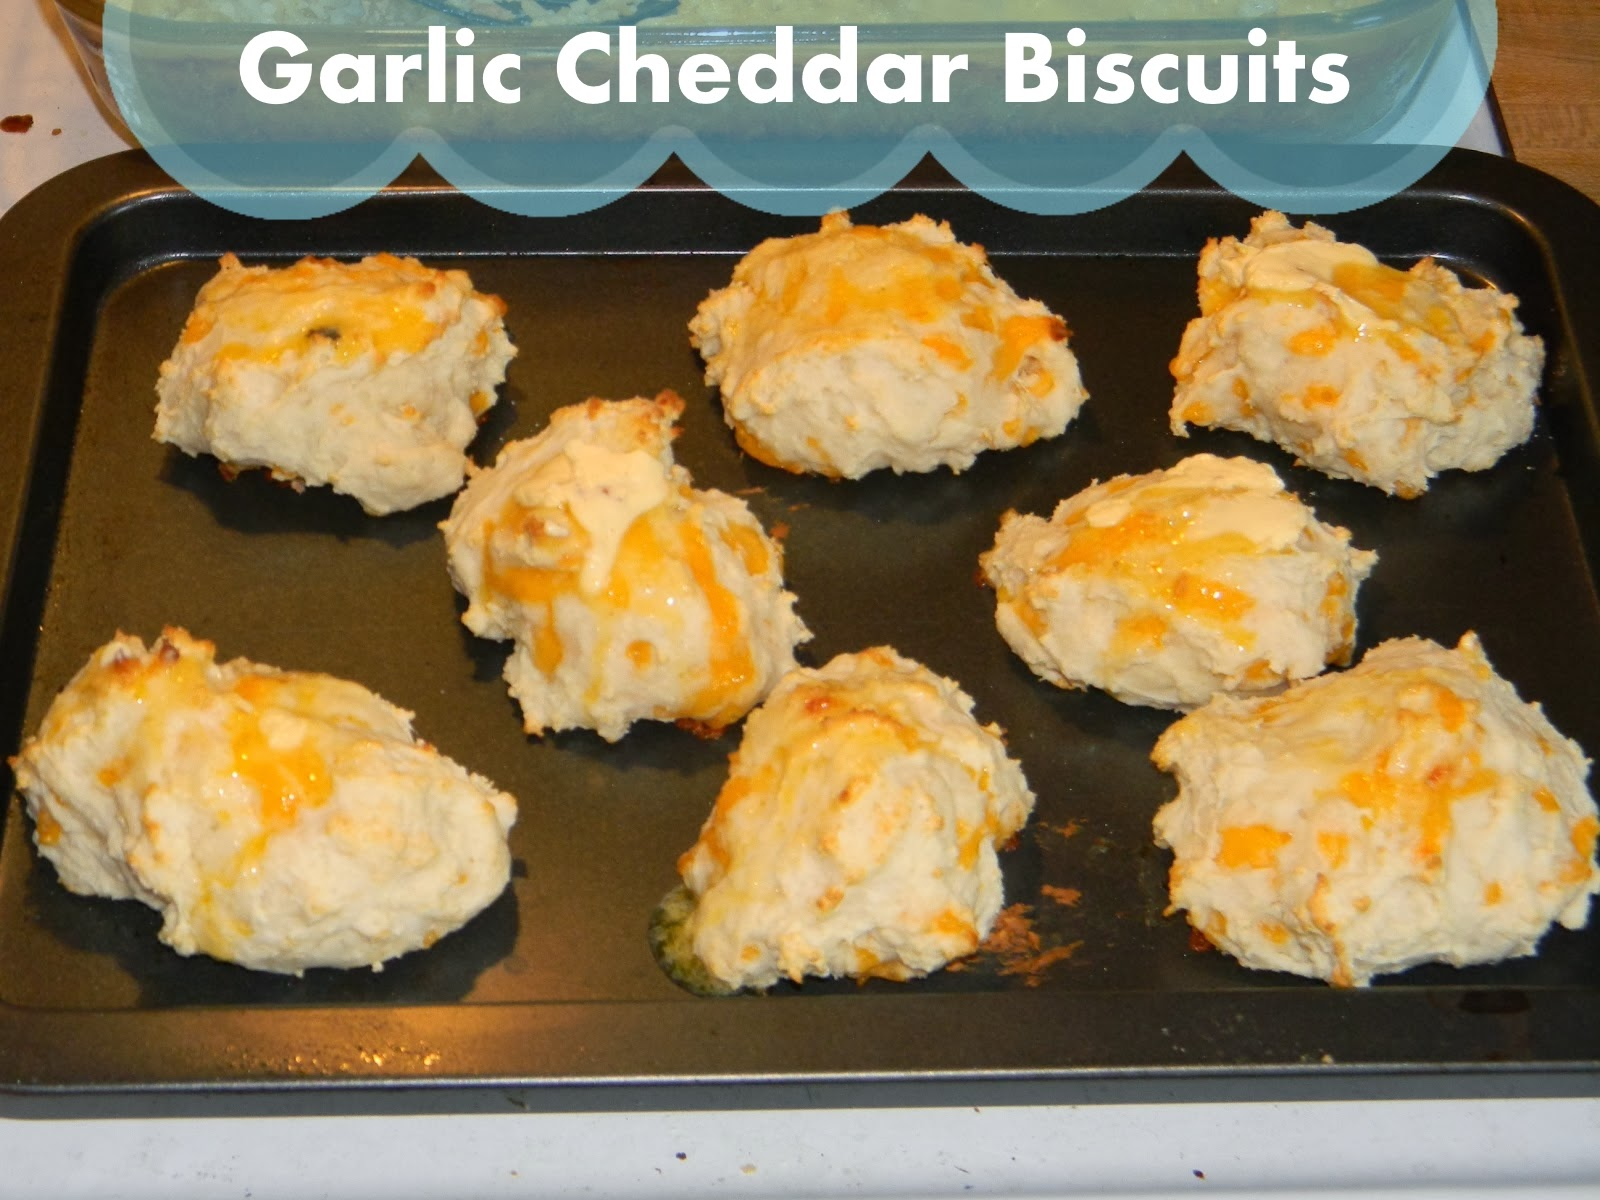 Growing to Four: Garlic Cheddar Biscuits